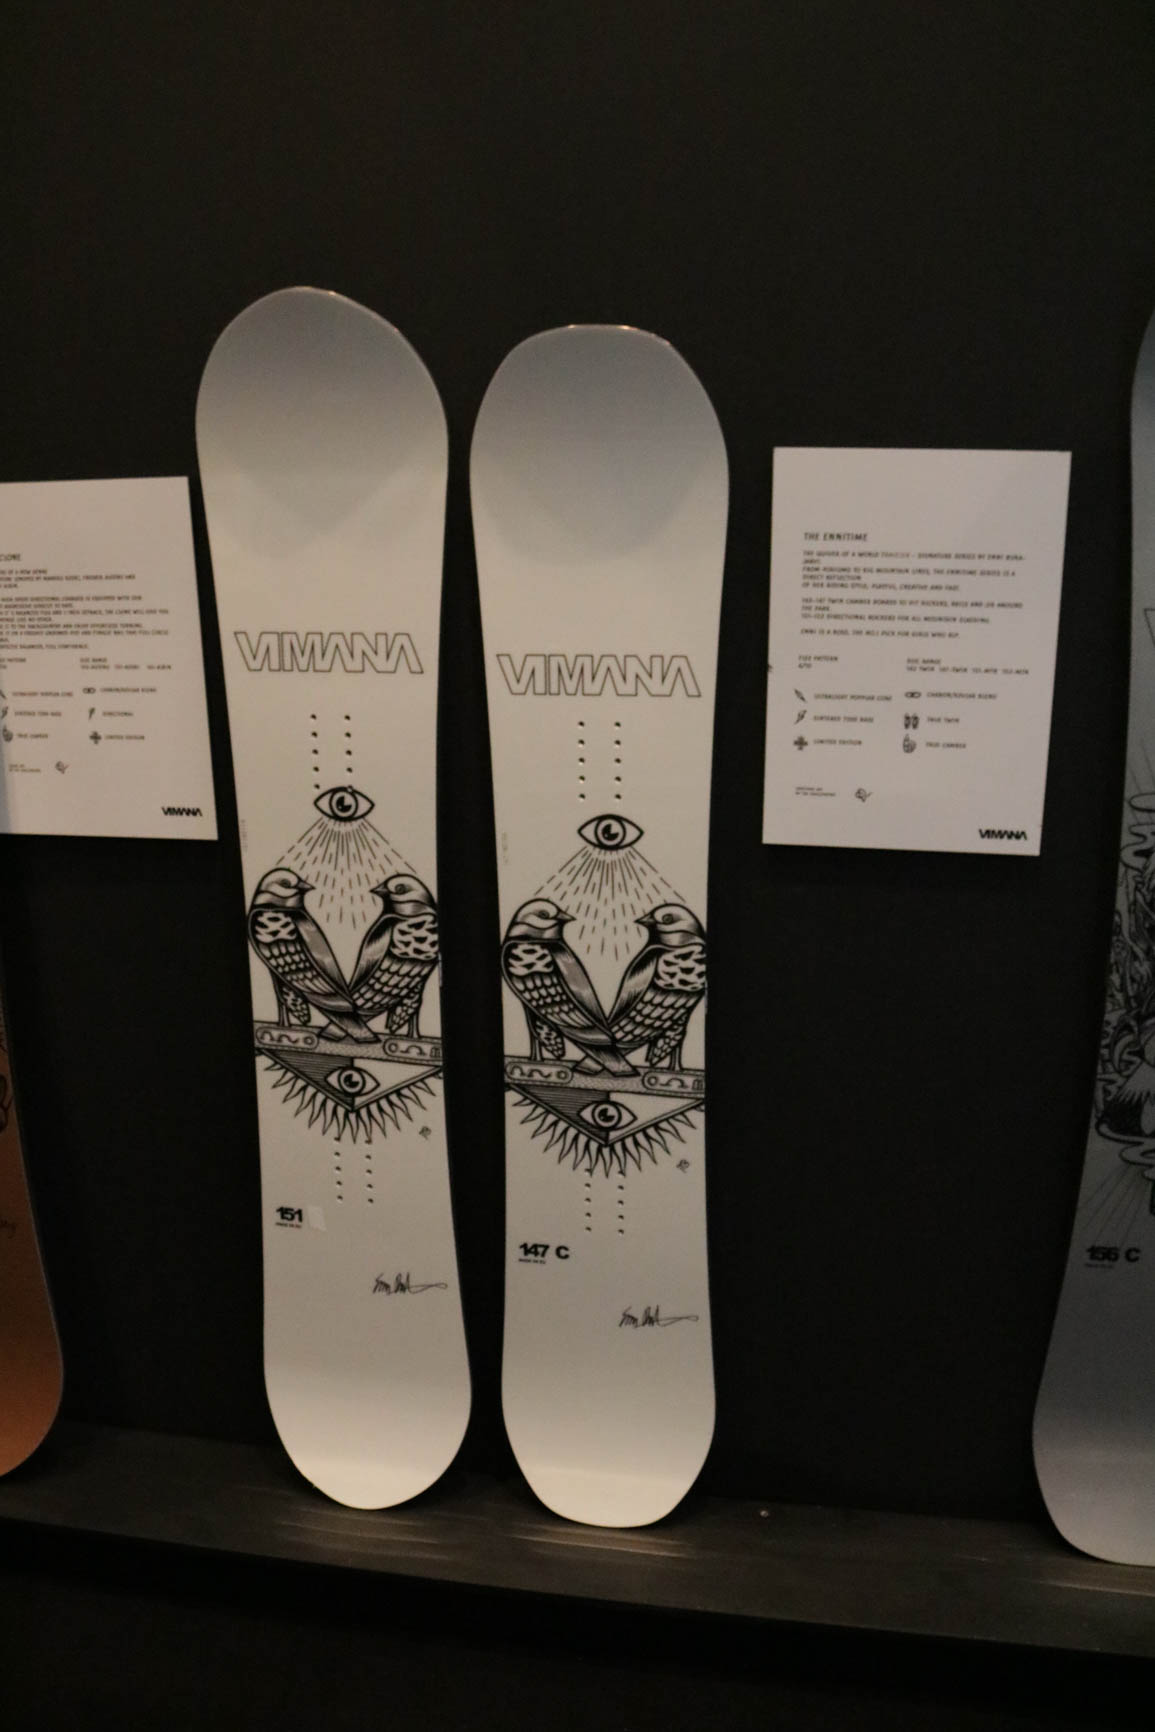 Vimana Snowboards 18/19 (von links nach rechts): The Ennitime (Directional), The Ennitime (True Twin)